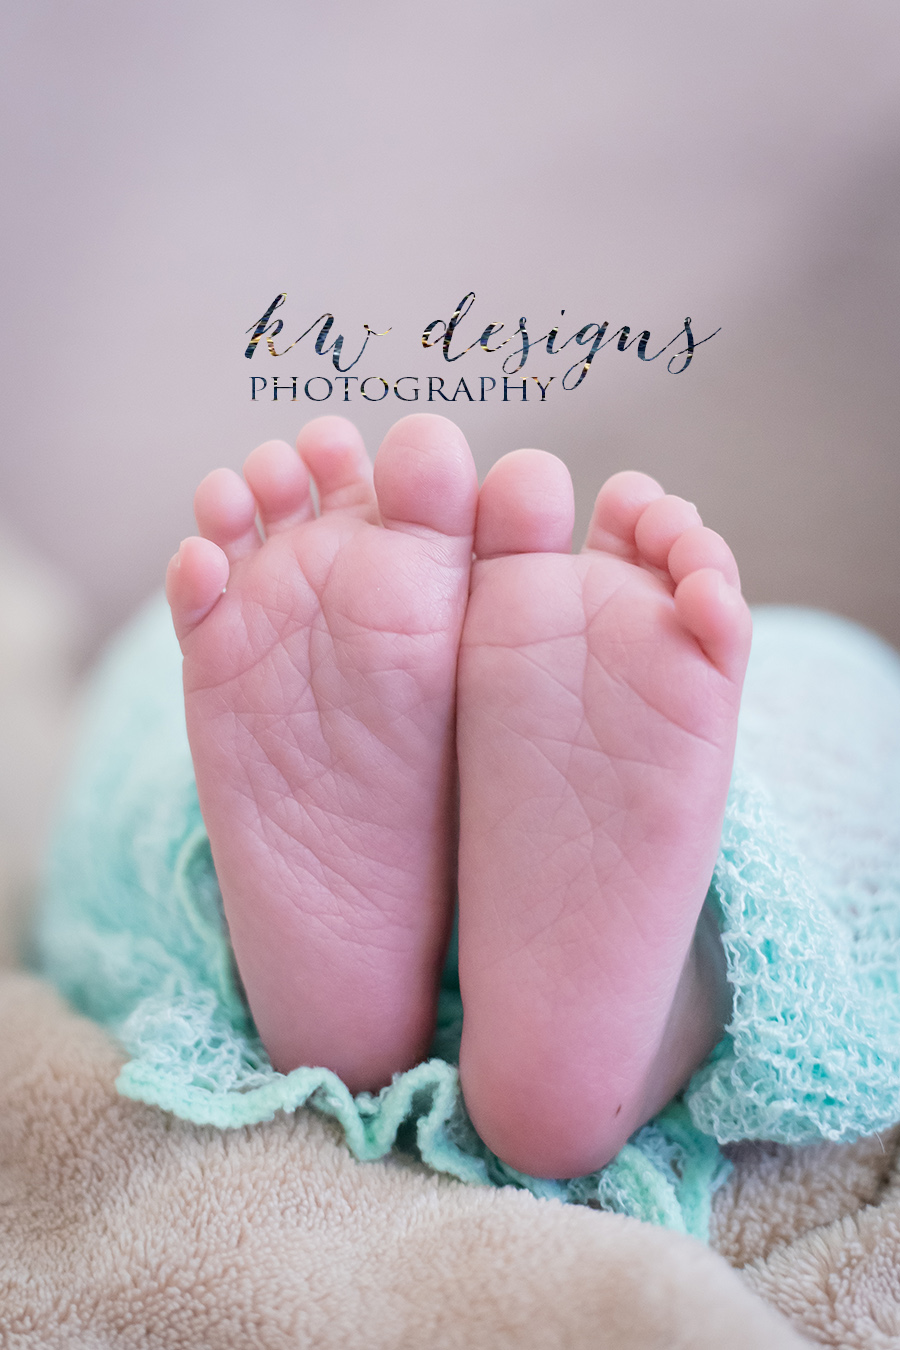 KW Designs Photo Newborn